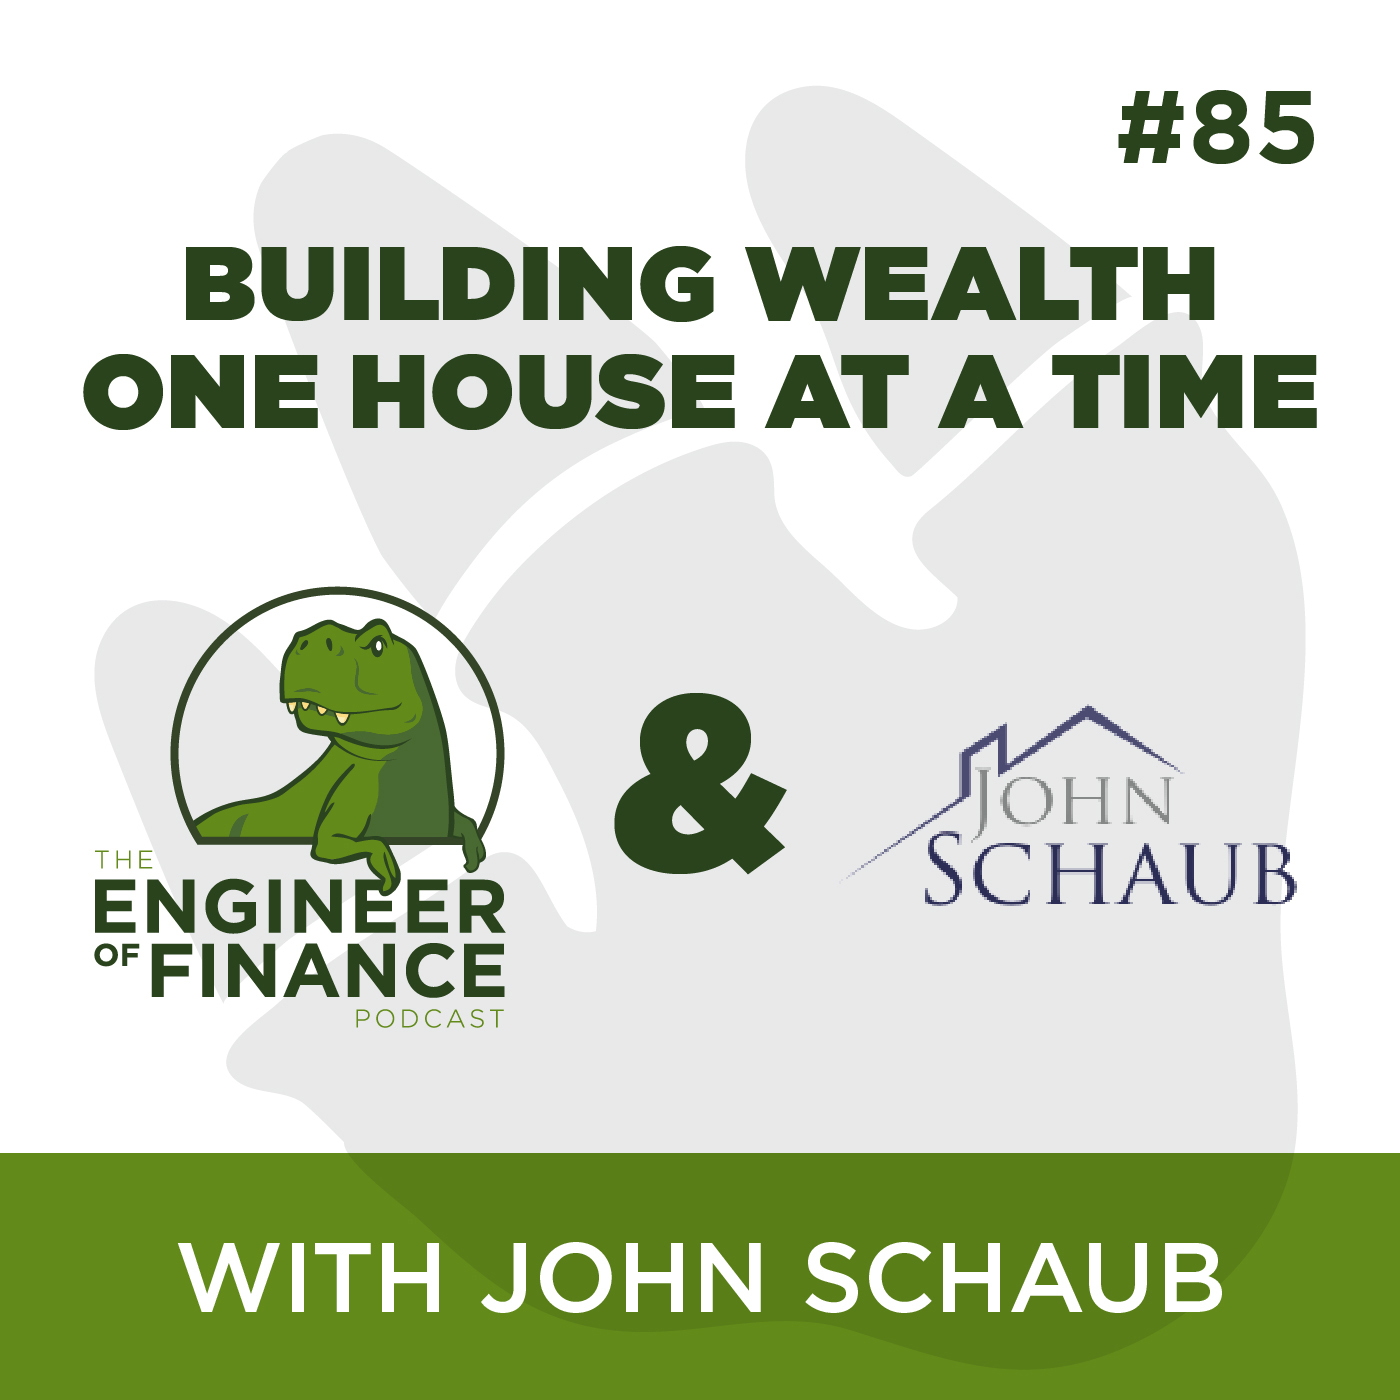 Building Wealth One House at a Time with John Schaub – Episode 85